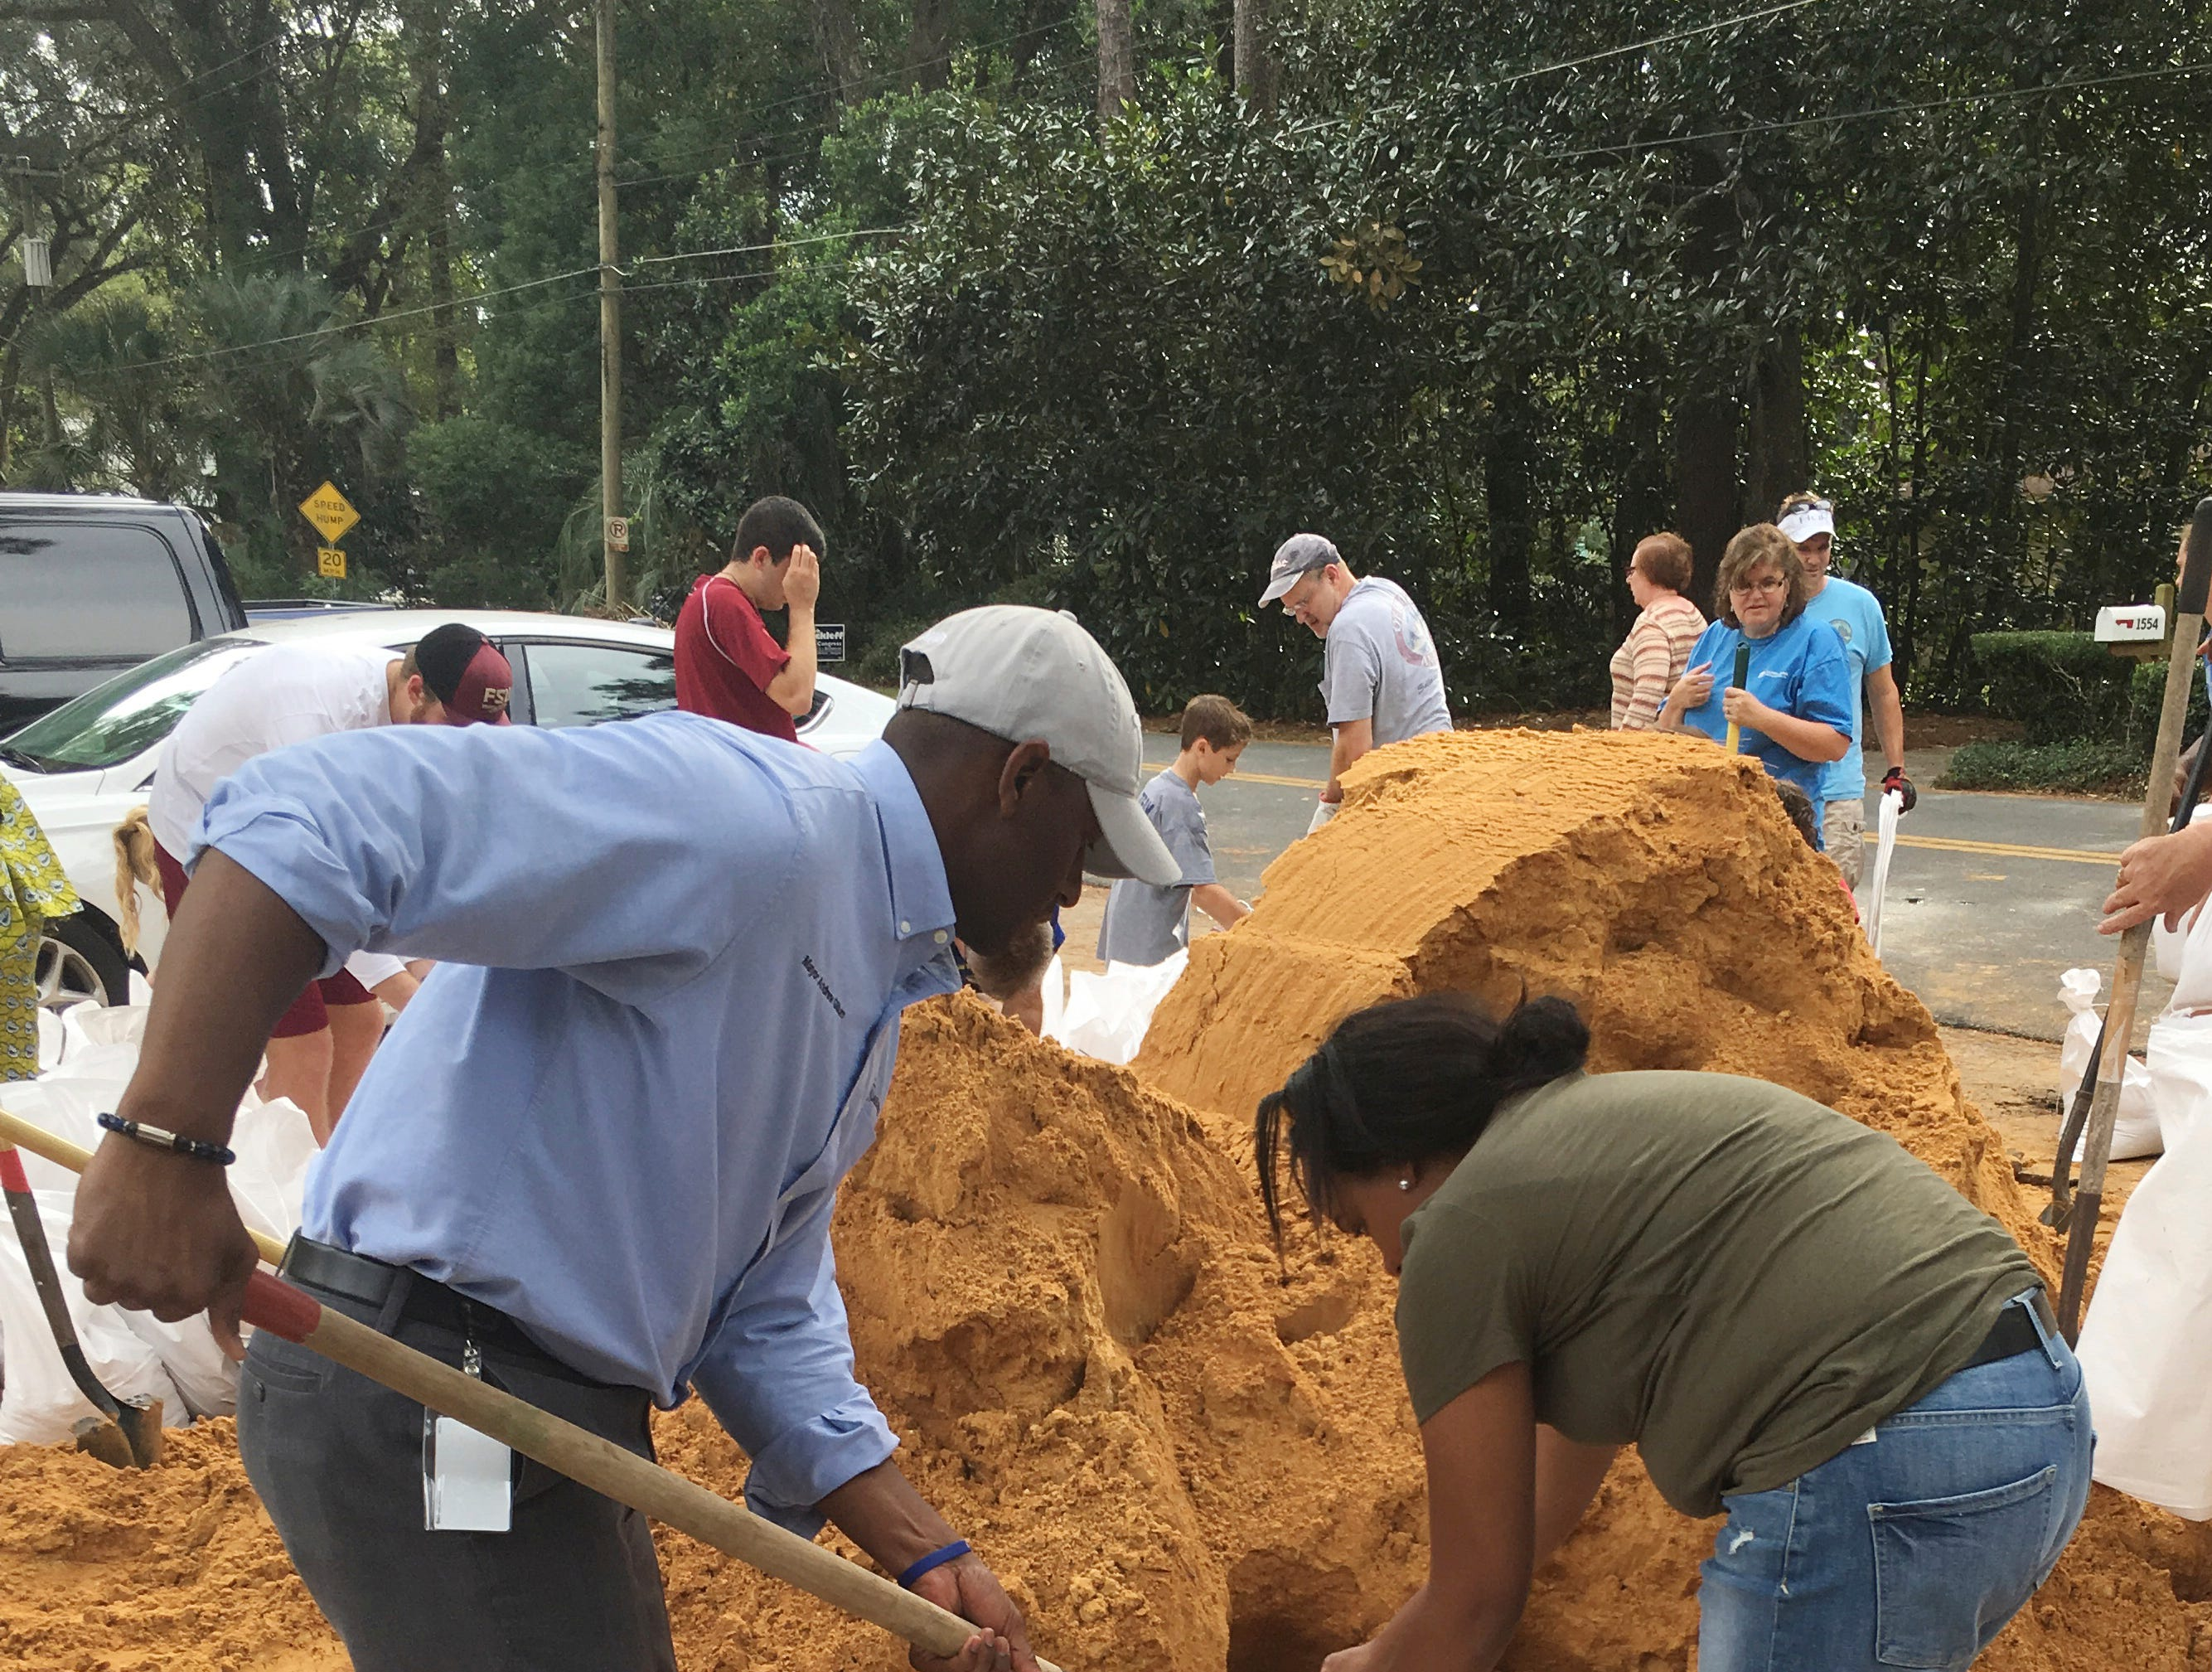 Tallahassee Mayor and Democratic gubernatorial candidate, Andrew Gillum, left, helps Eboni Sipling fill up sandbags in Tallahassee, Fla., Monday, Oct. 8, 2018. Residents in Florida's Panhandle and Big Bend are getting ready for Hurricane Michael, which is expected to make landfall by midweek.